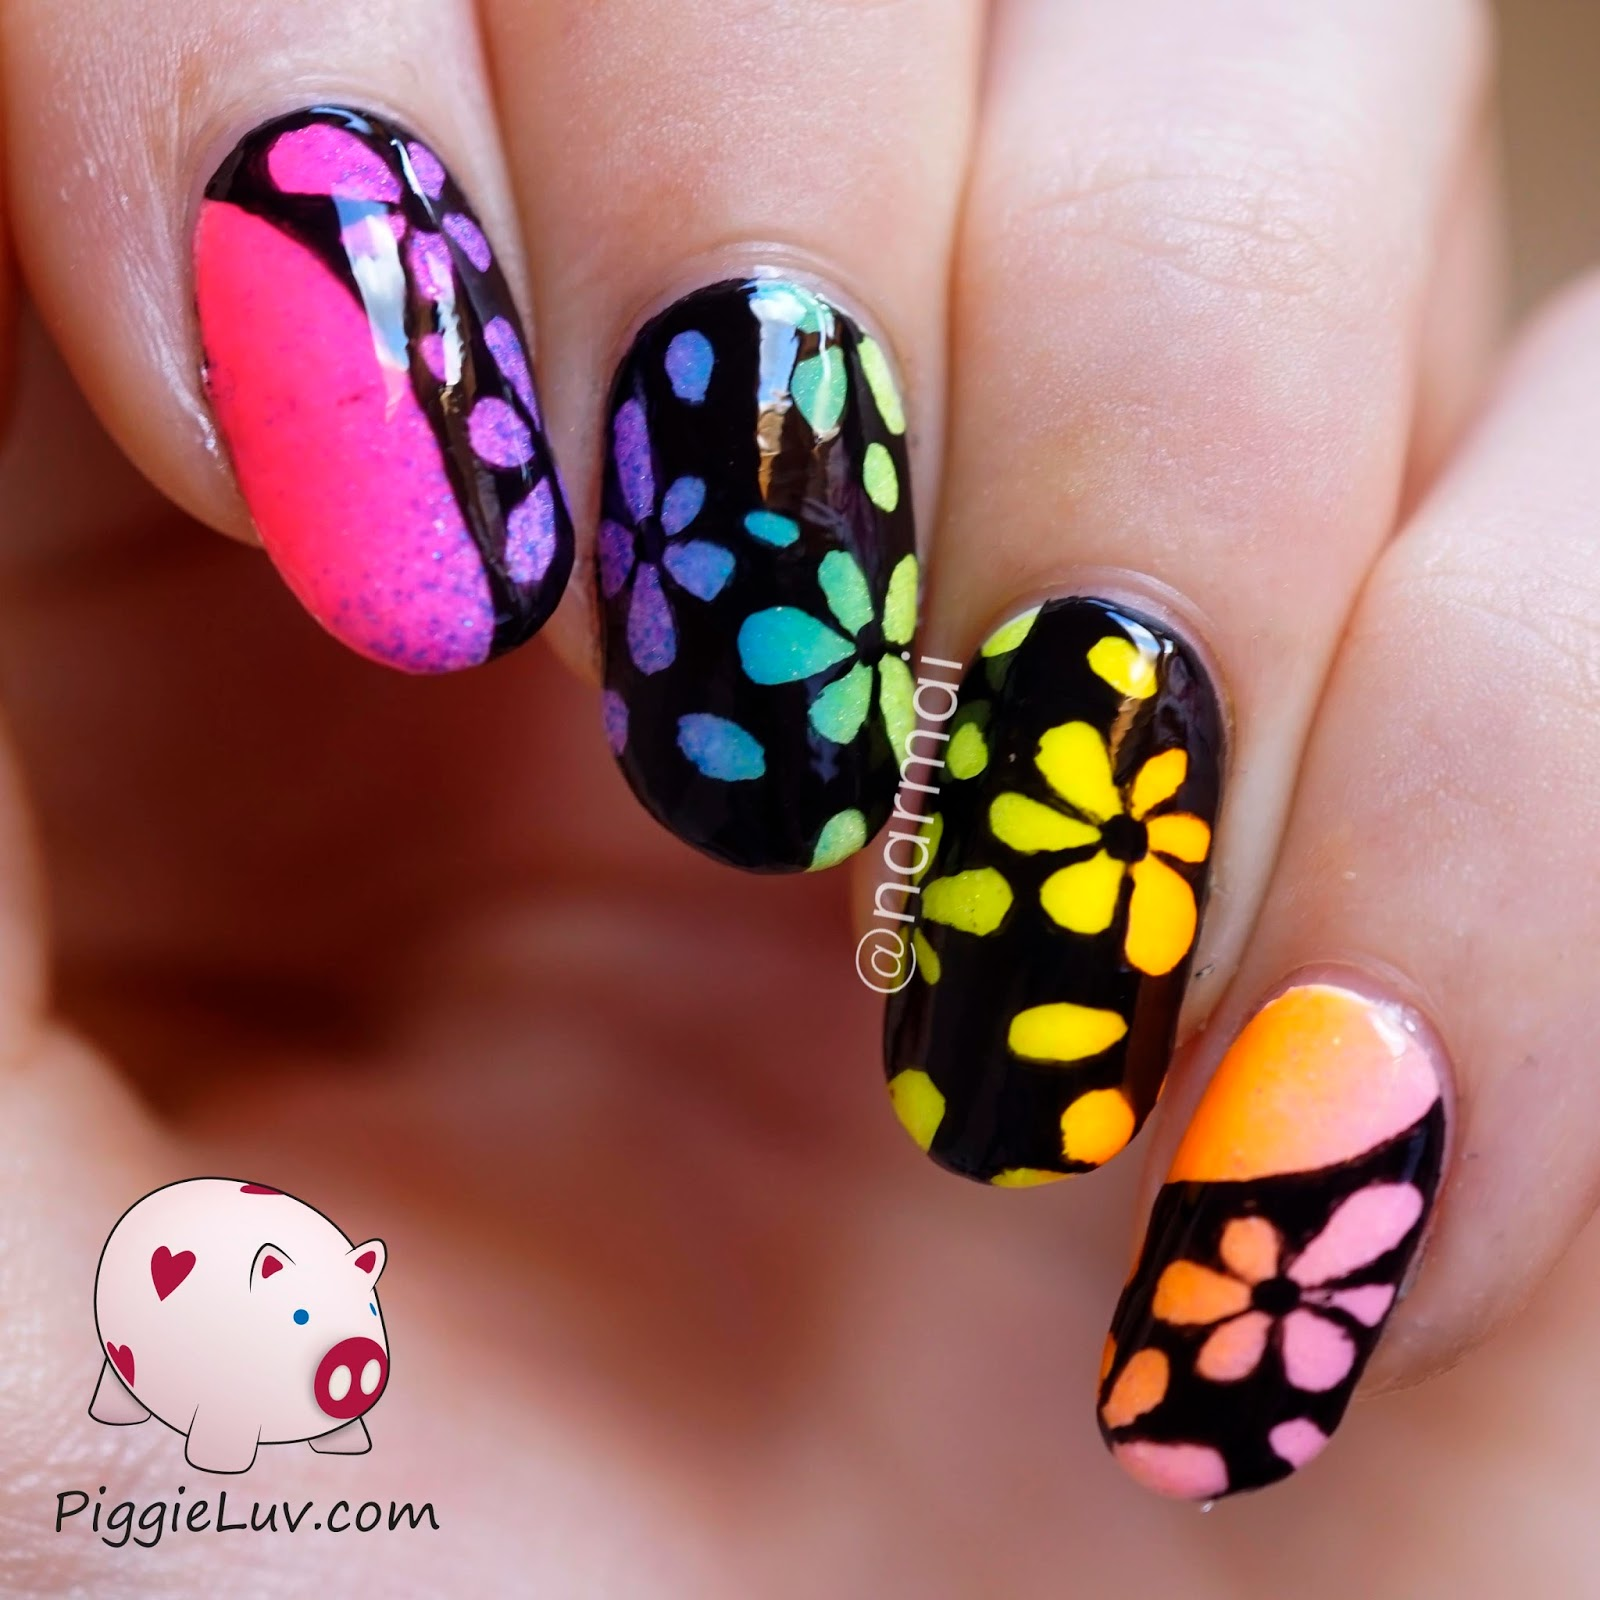 Piggieluv inverse glow in the dark flowers nail art i painted the black pattern by hand with black acrylic paint and my basic one gold detail brush from christrio scotland theres more info about this brush prinsesfo Image collections